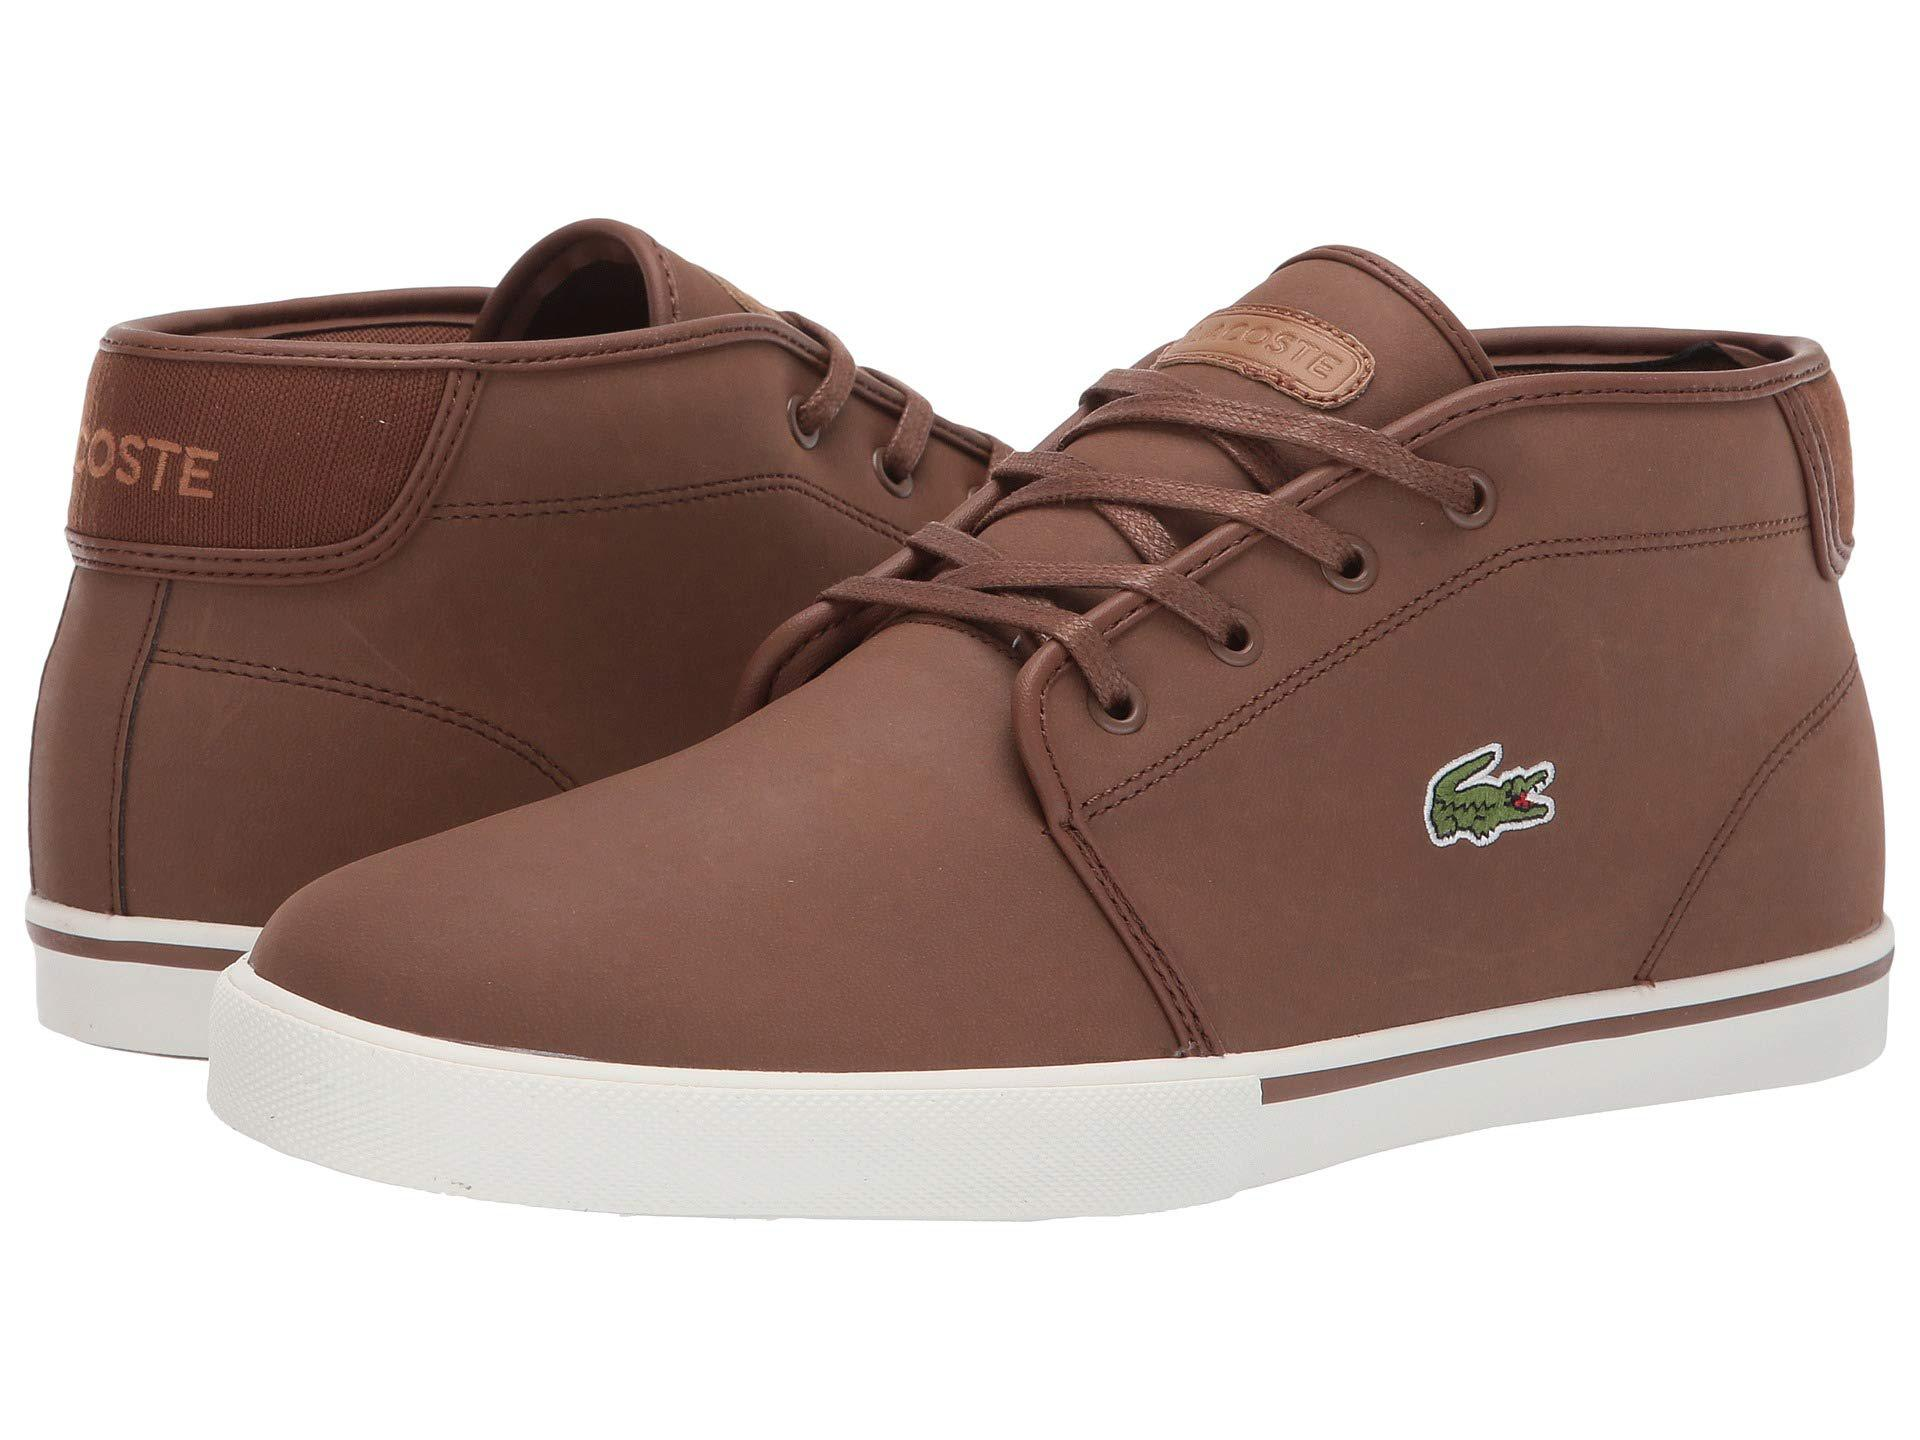 ea2edc477 Lyst - Lacoste Ampthill 119 1 Cma in Brown for Men